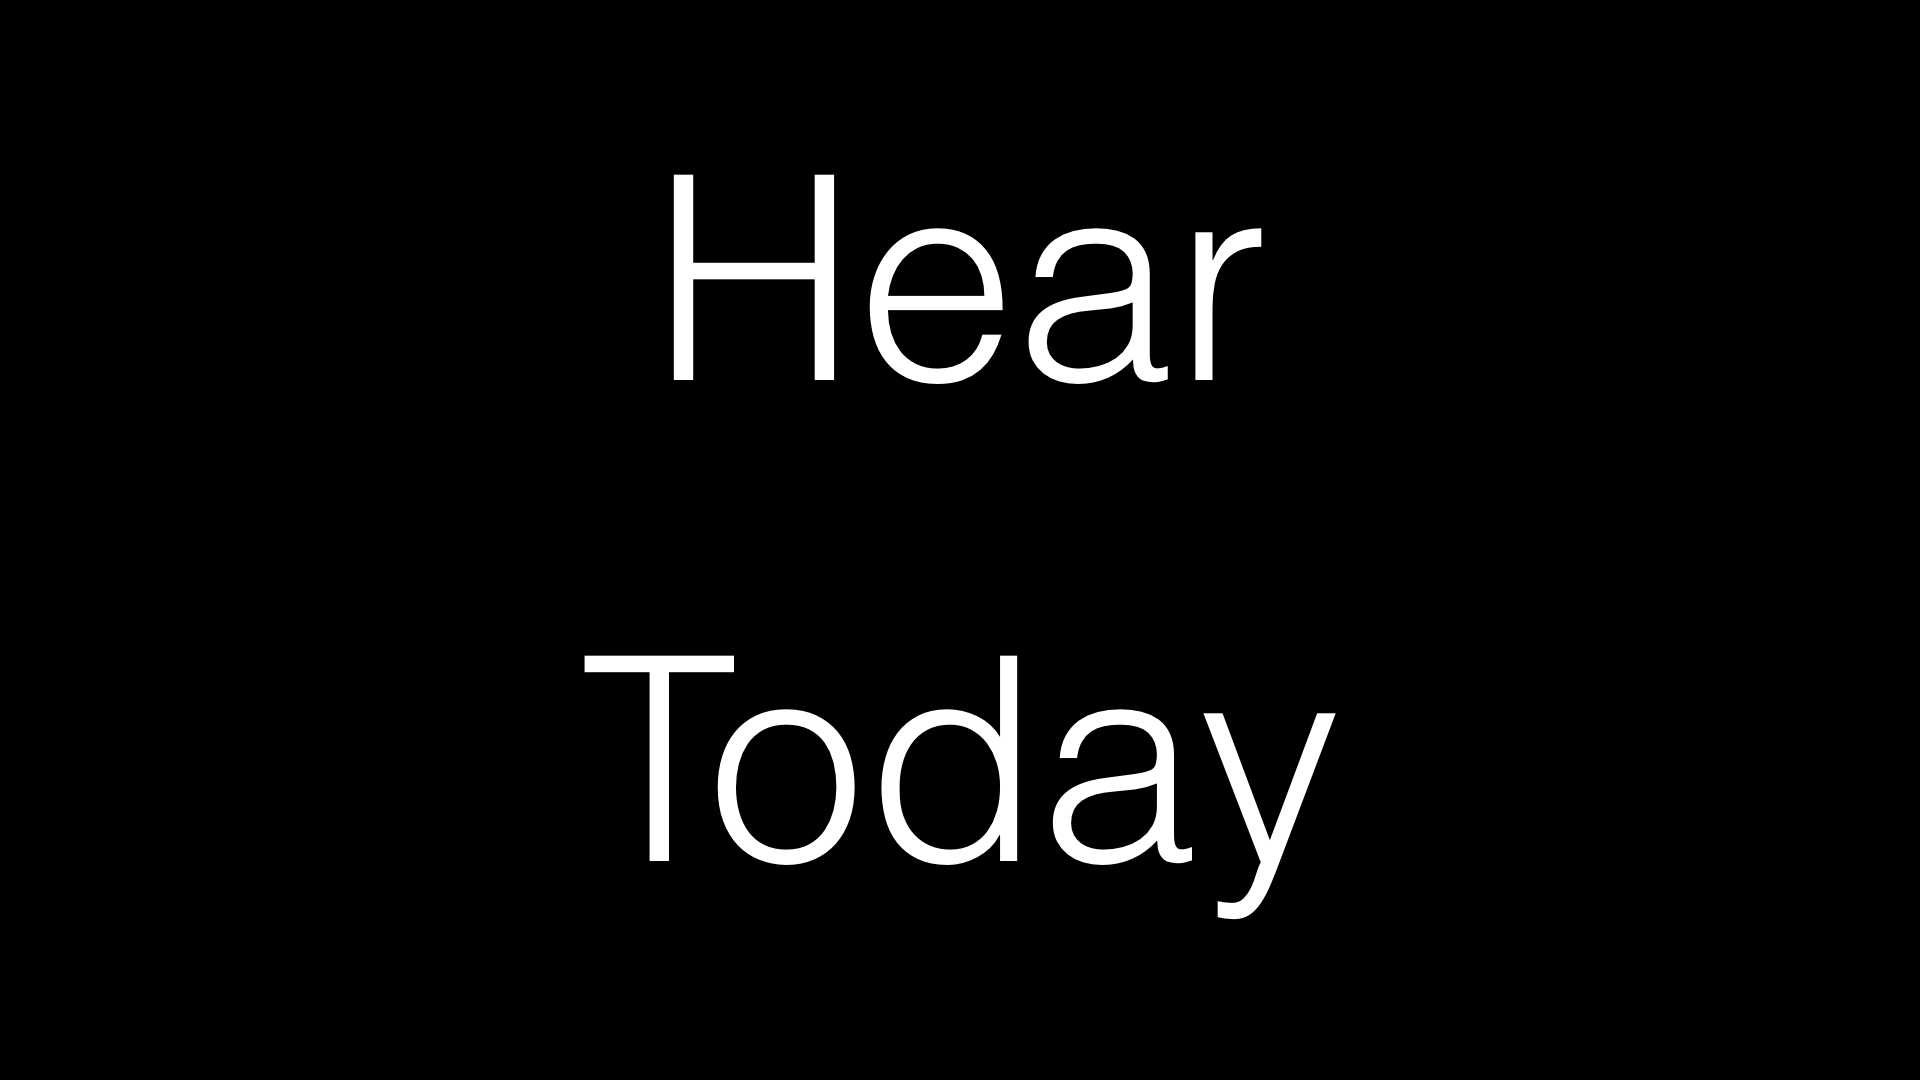 Hear Today WIDE.001.jpeg